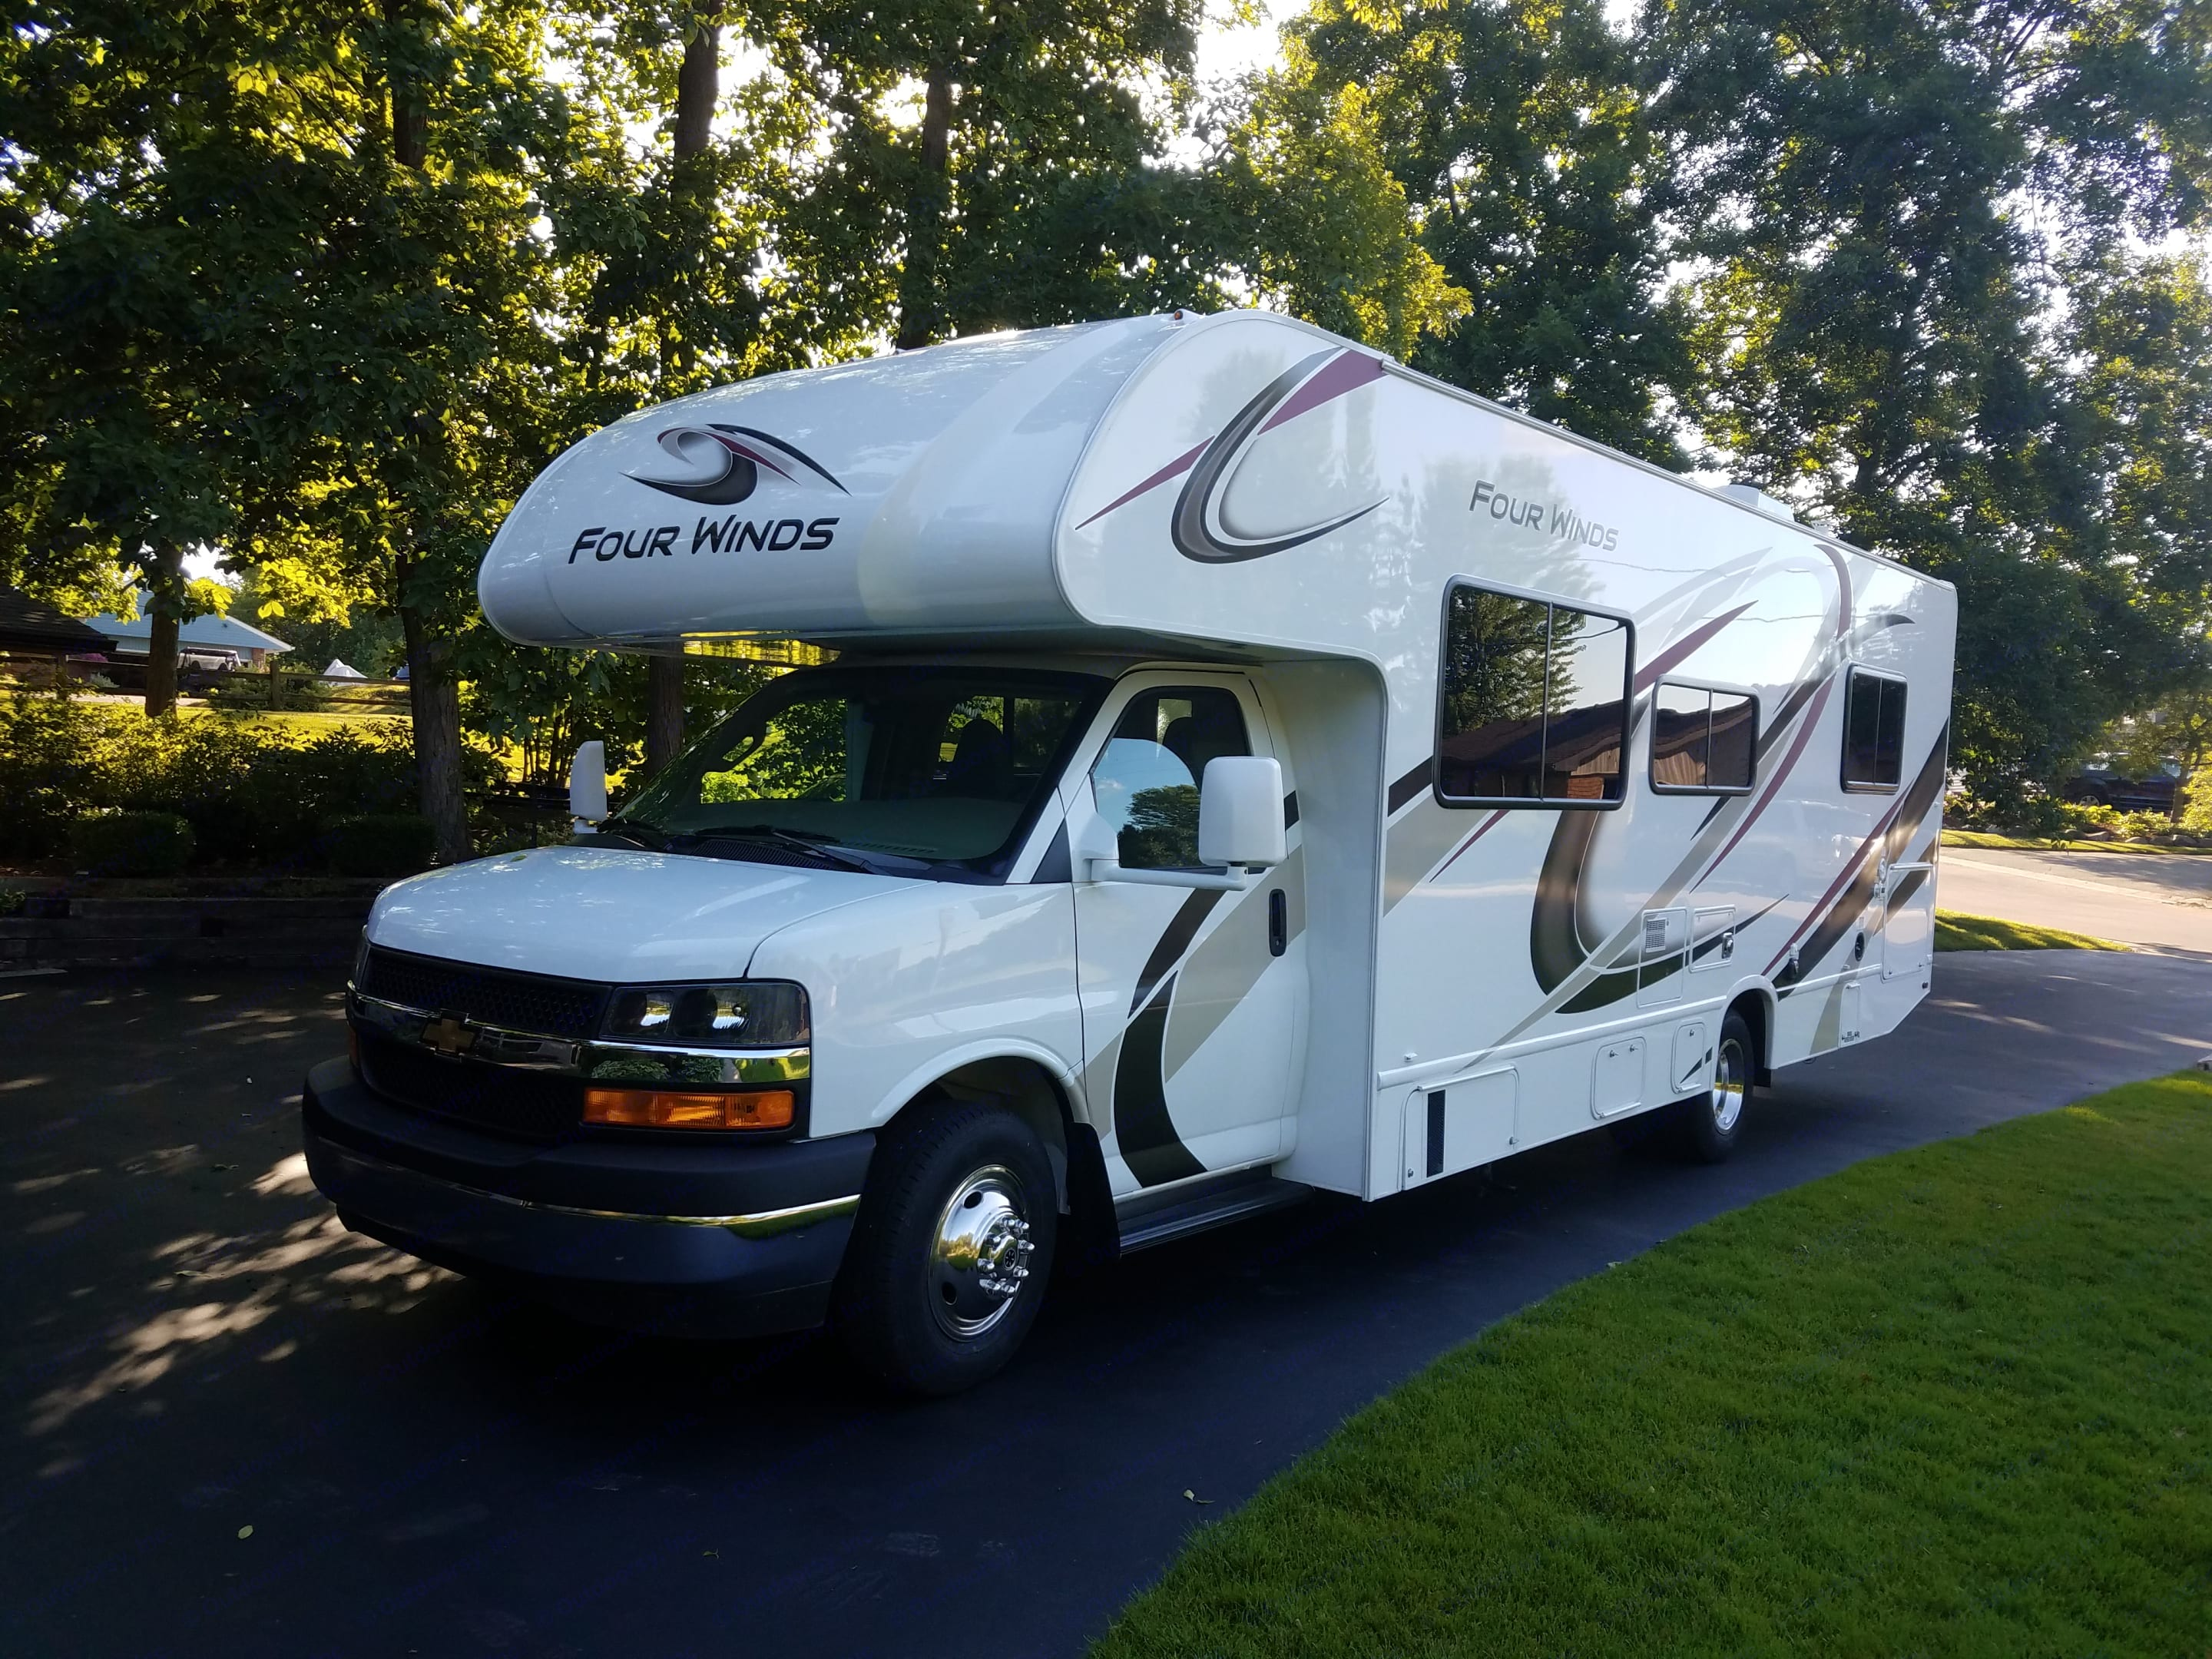 New 2020 Thor Four Winds with low mileage. Thor Motor Coach Four Winds 2020